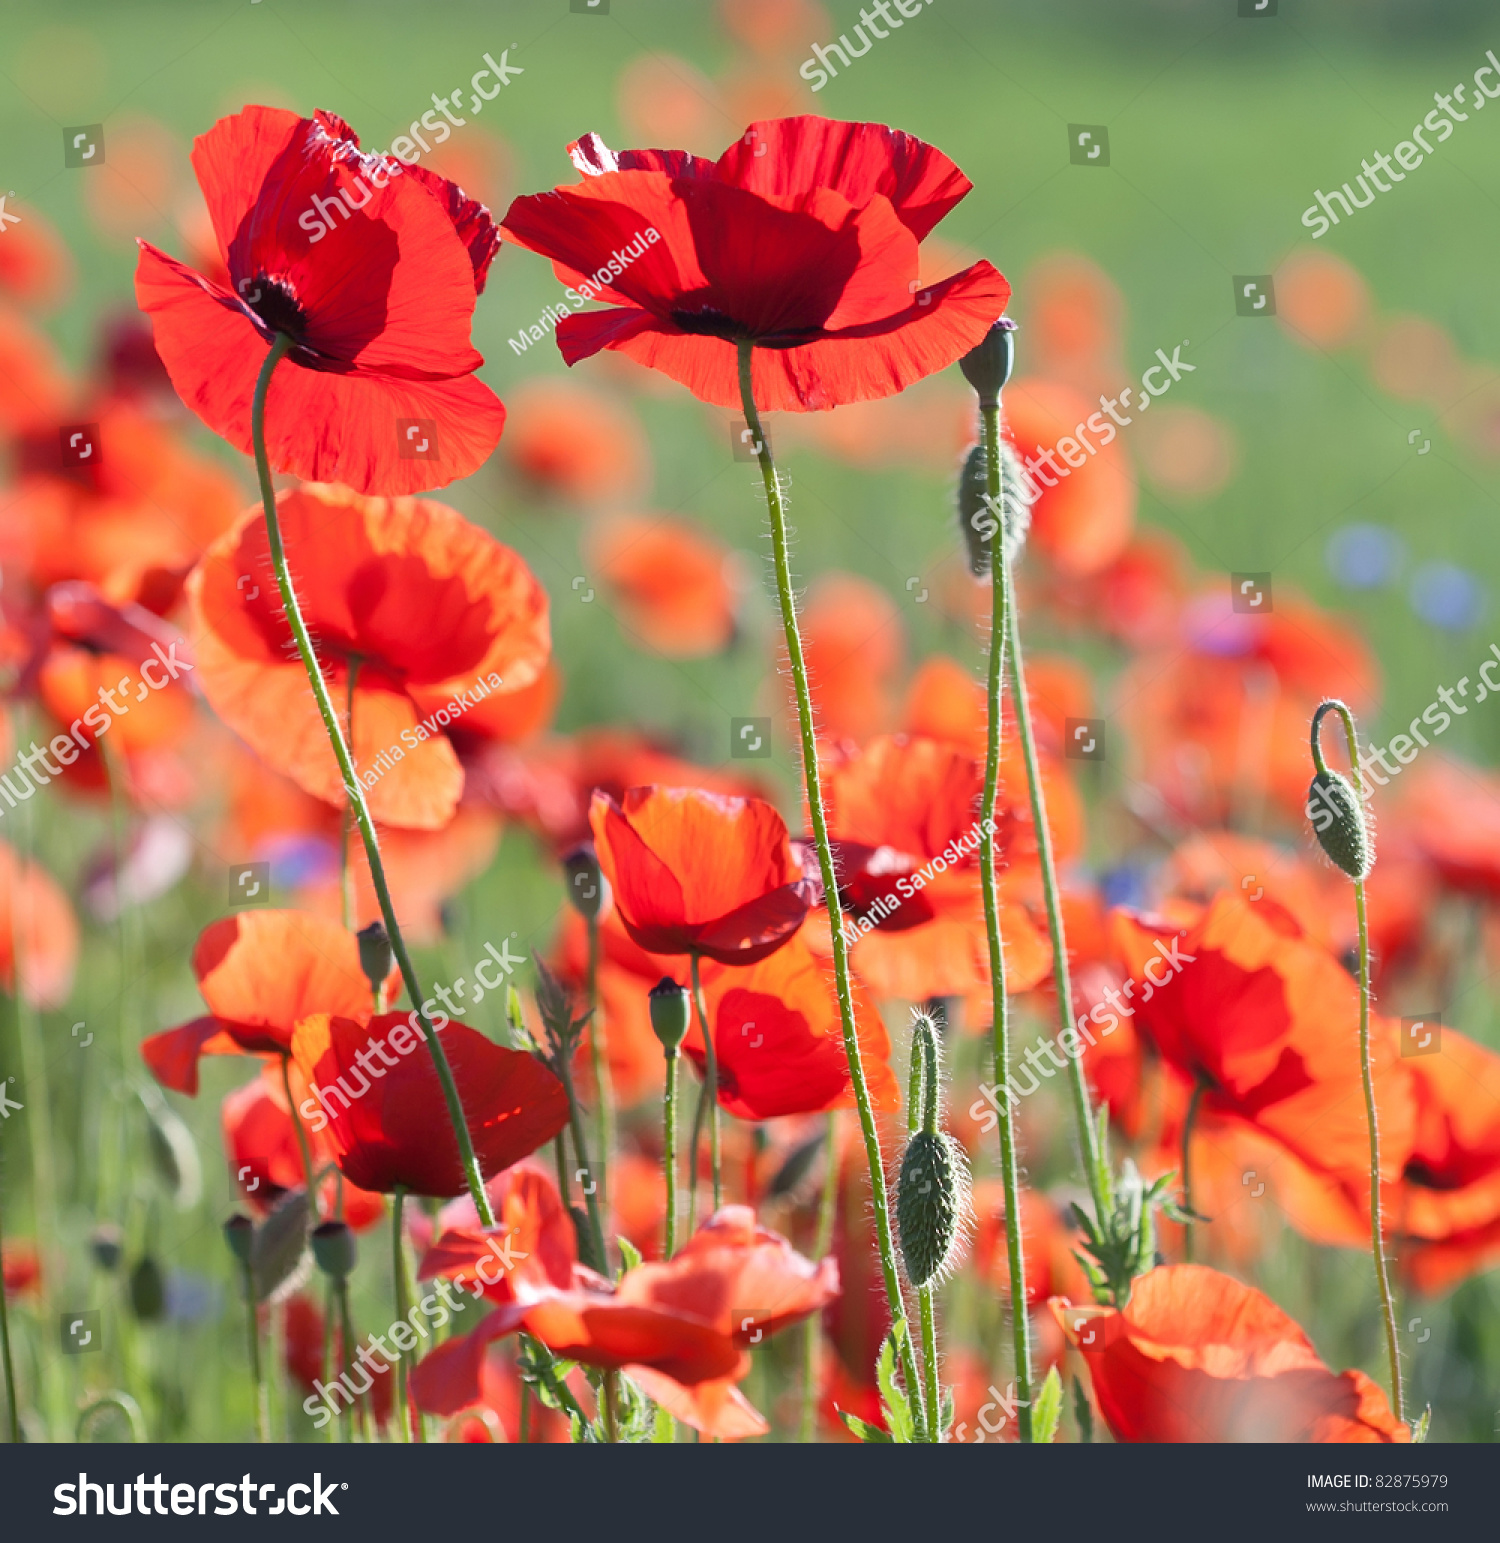 Flowers Poppy Selective Focus Colors June Stock Photo (Royalty Free ...